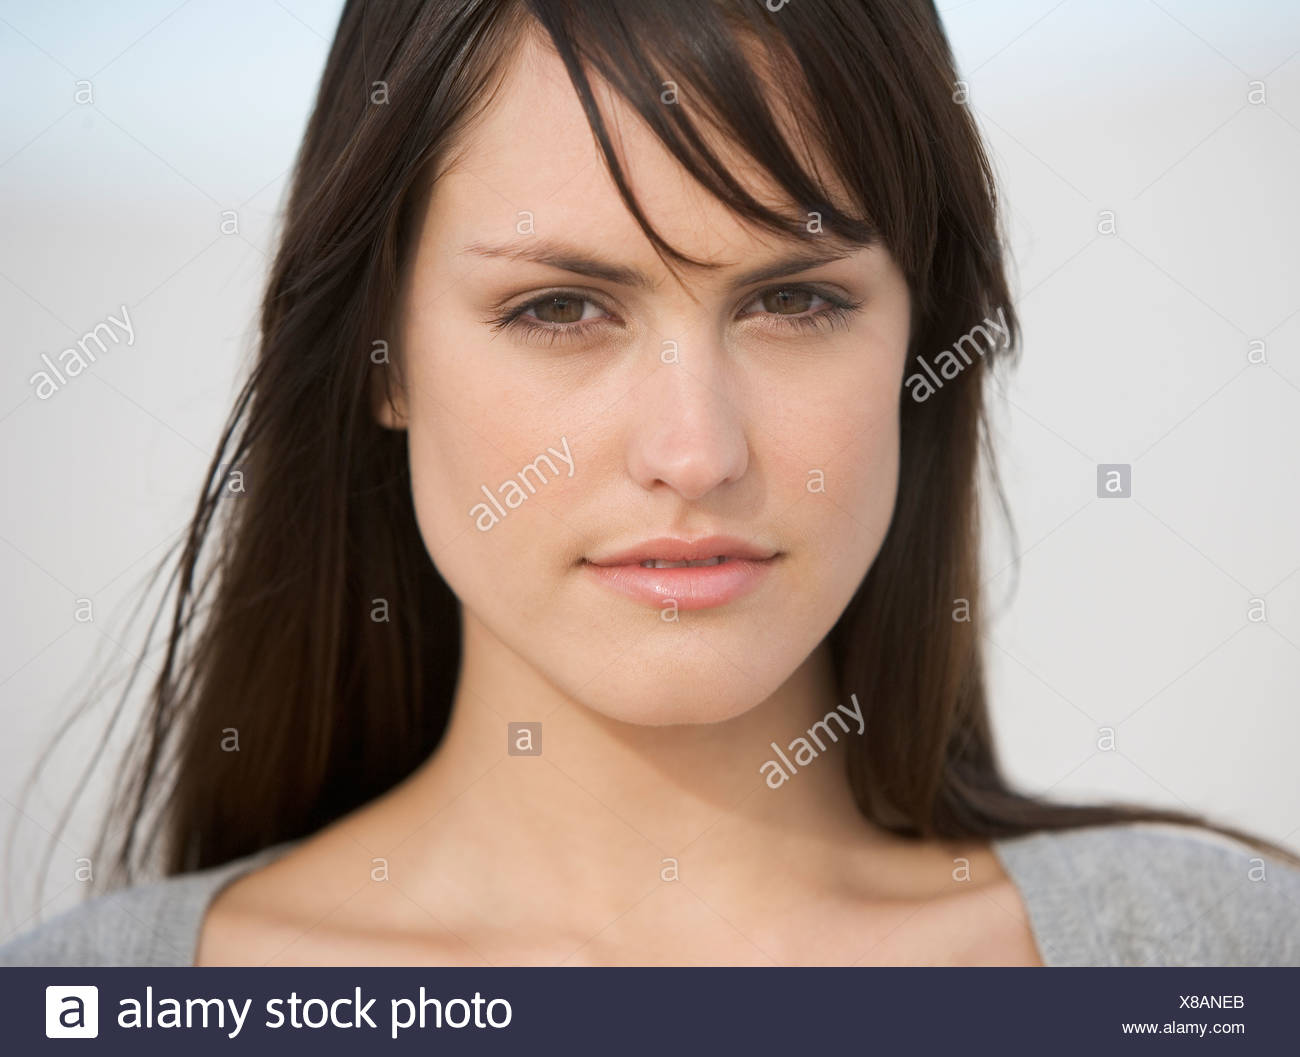 Portrait of a young woman - Stock Image